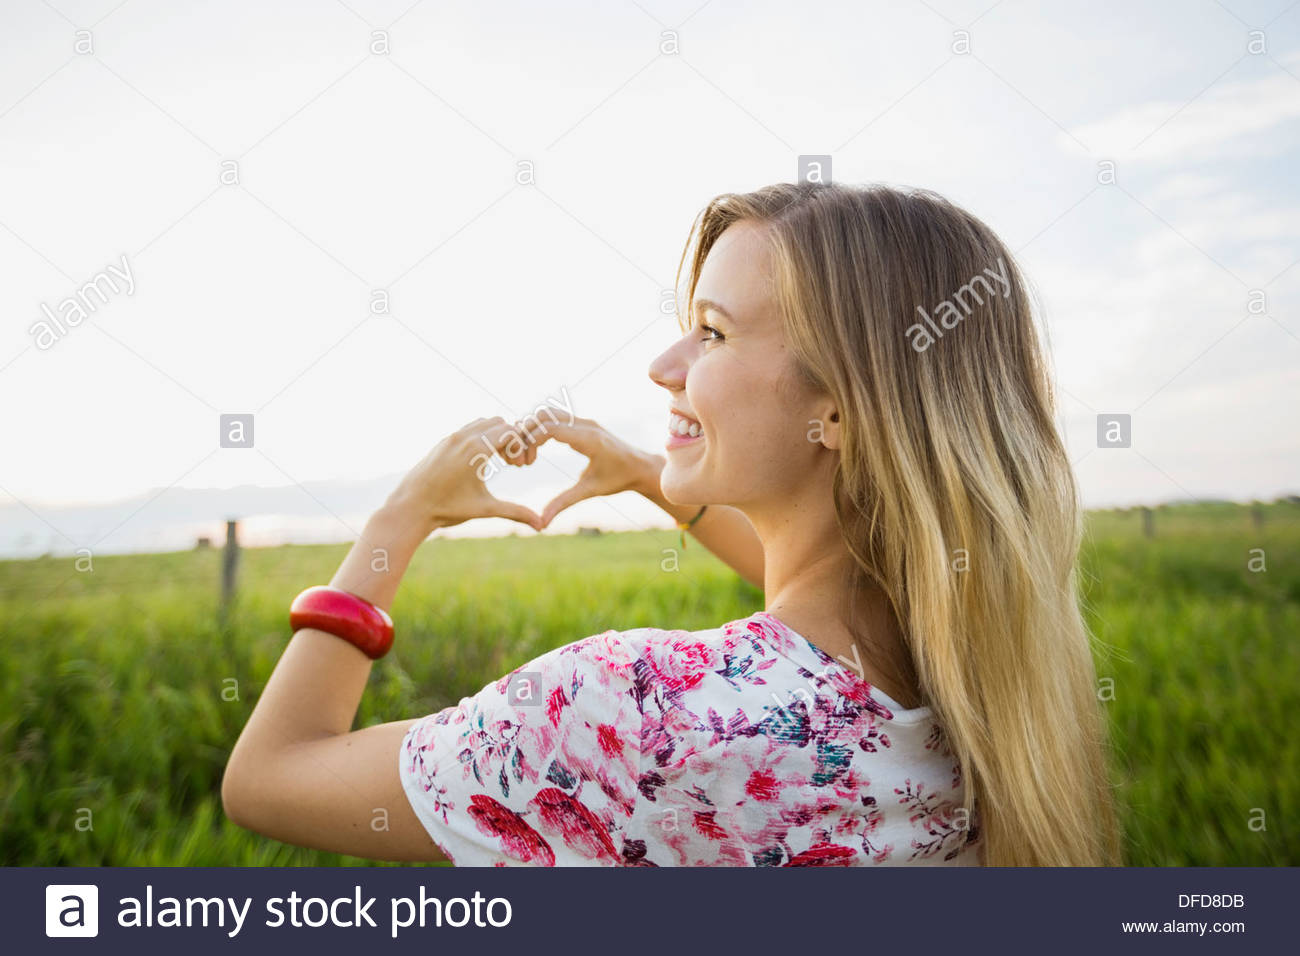 Over the shoulder view of young woman making heart shape with hands - Stock Image